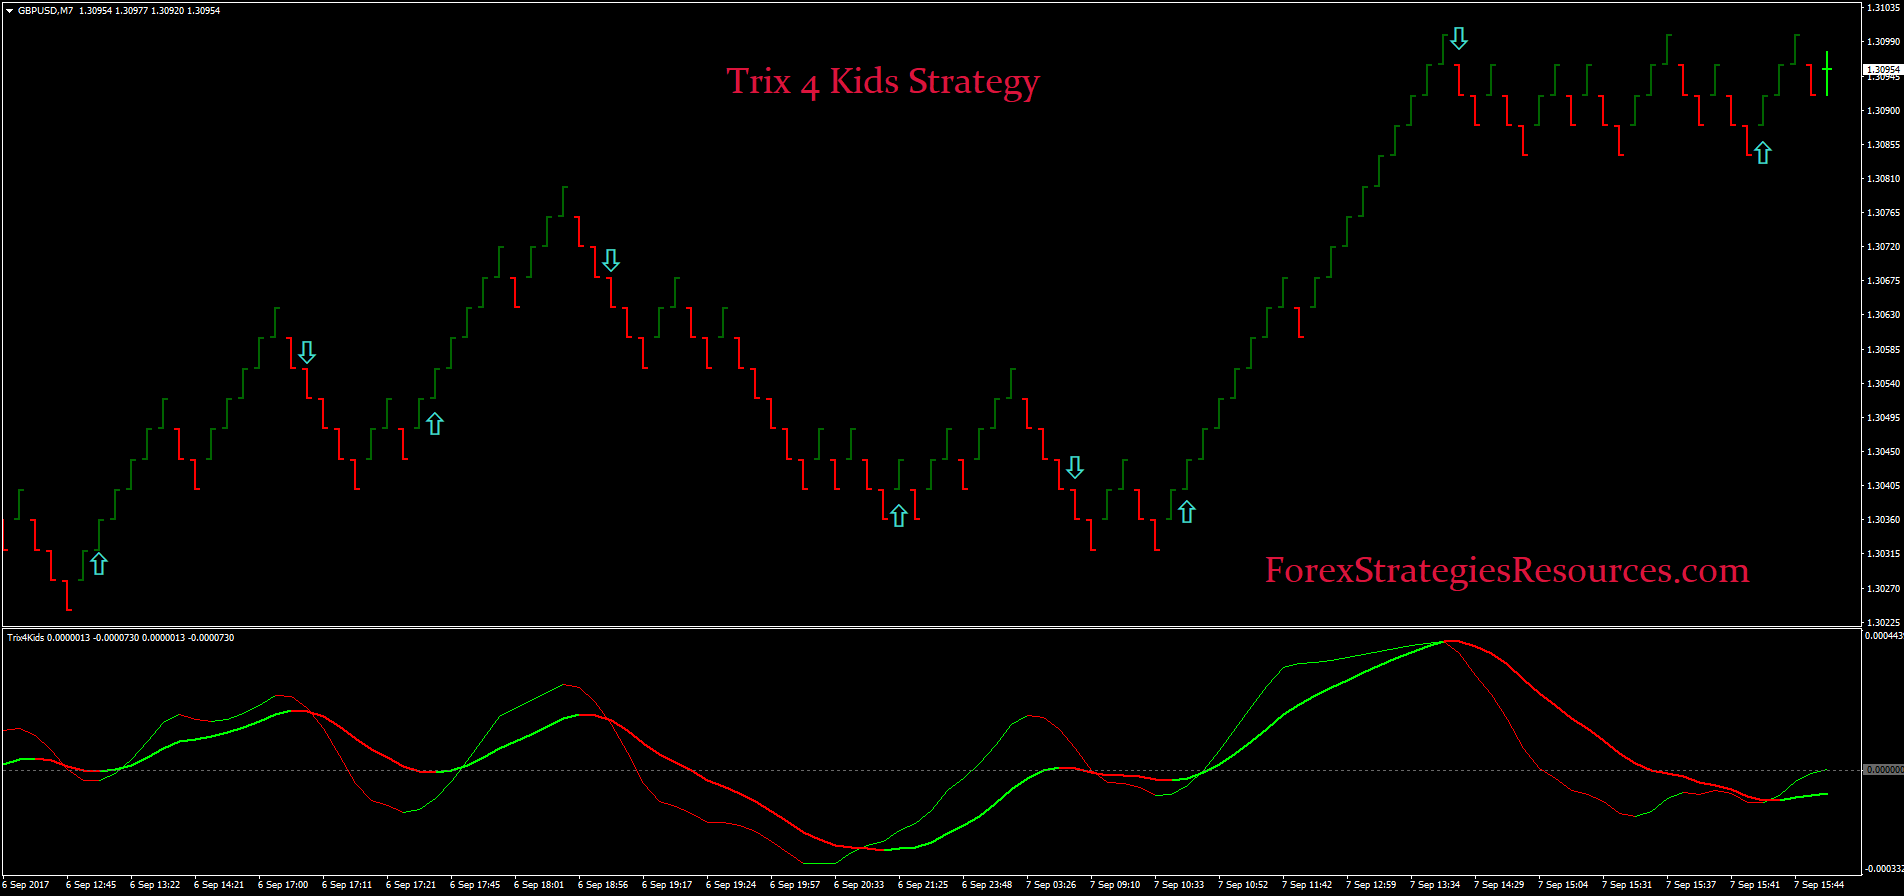 Trix 4 Kids Strategy Forex Strategies Resources Diagram Of Pullback Or Angle And Launch For Catapult 45